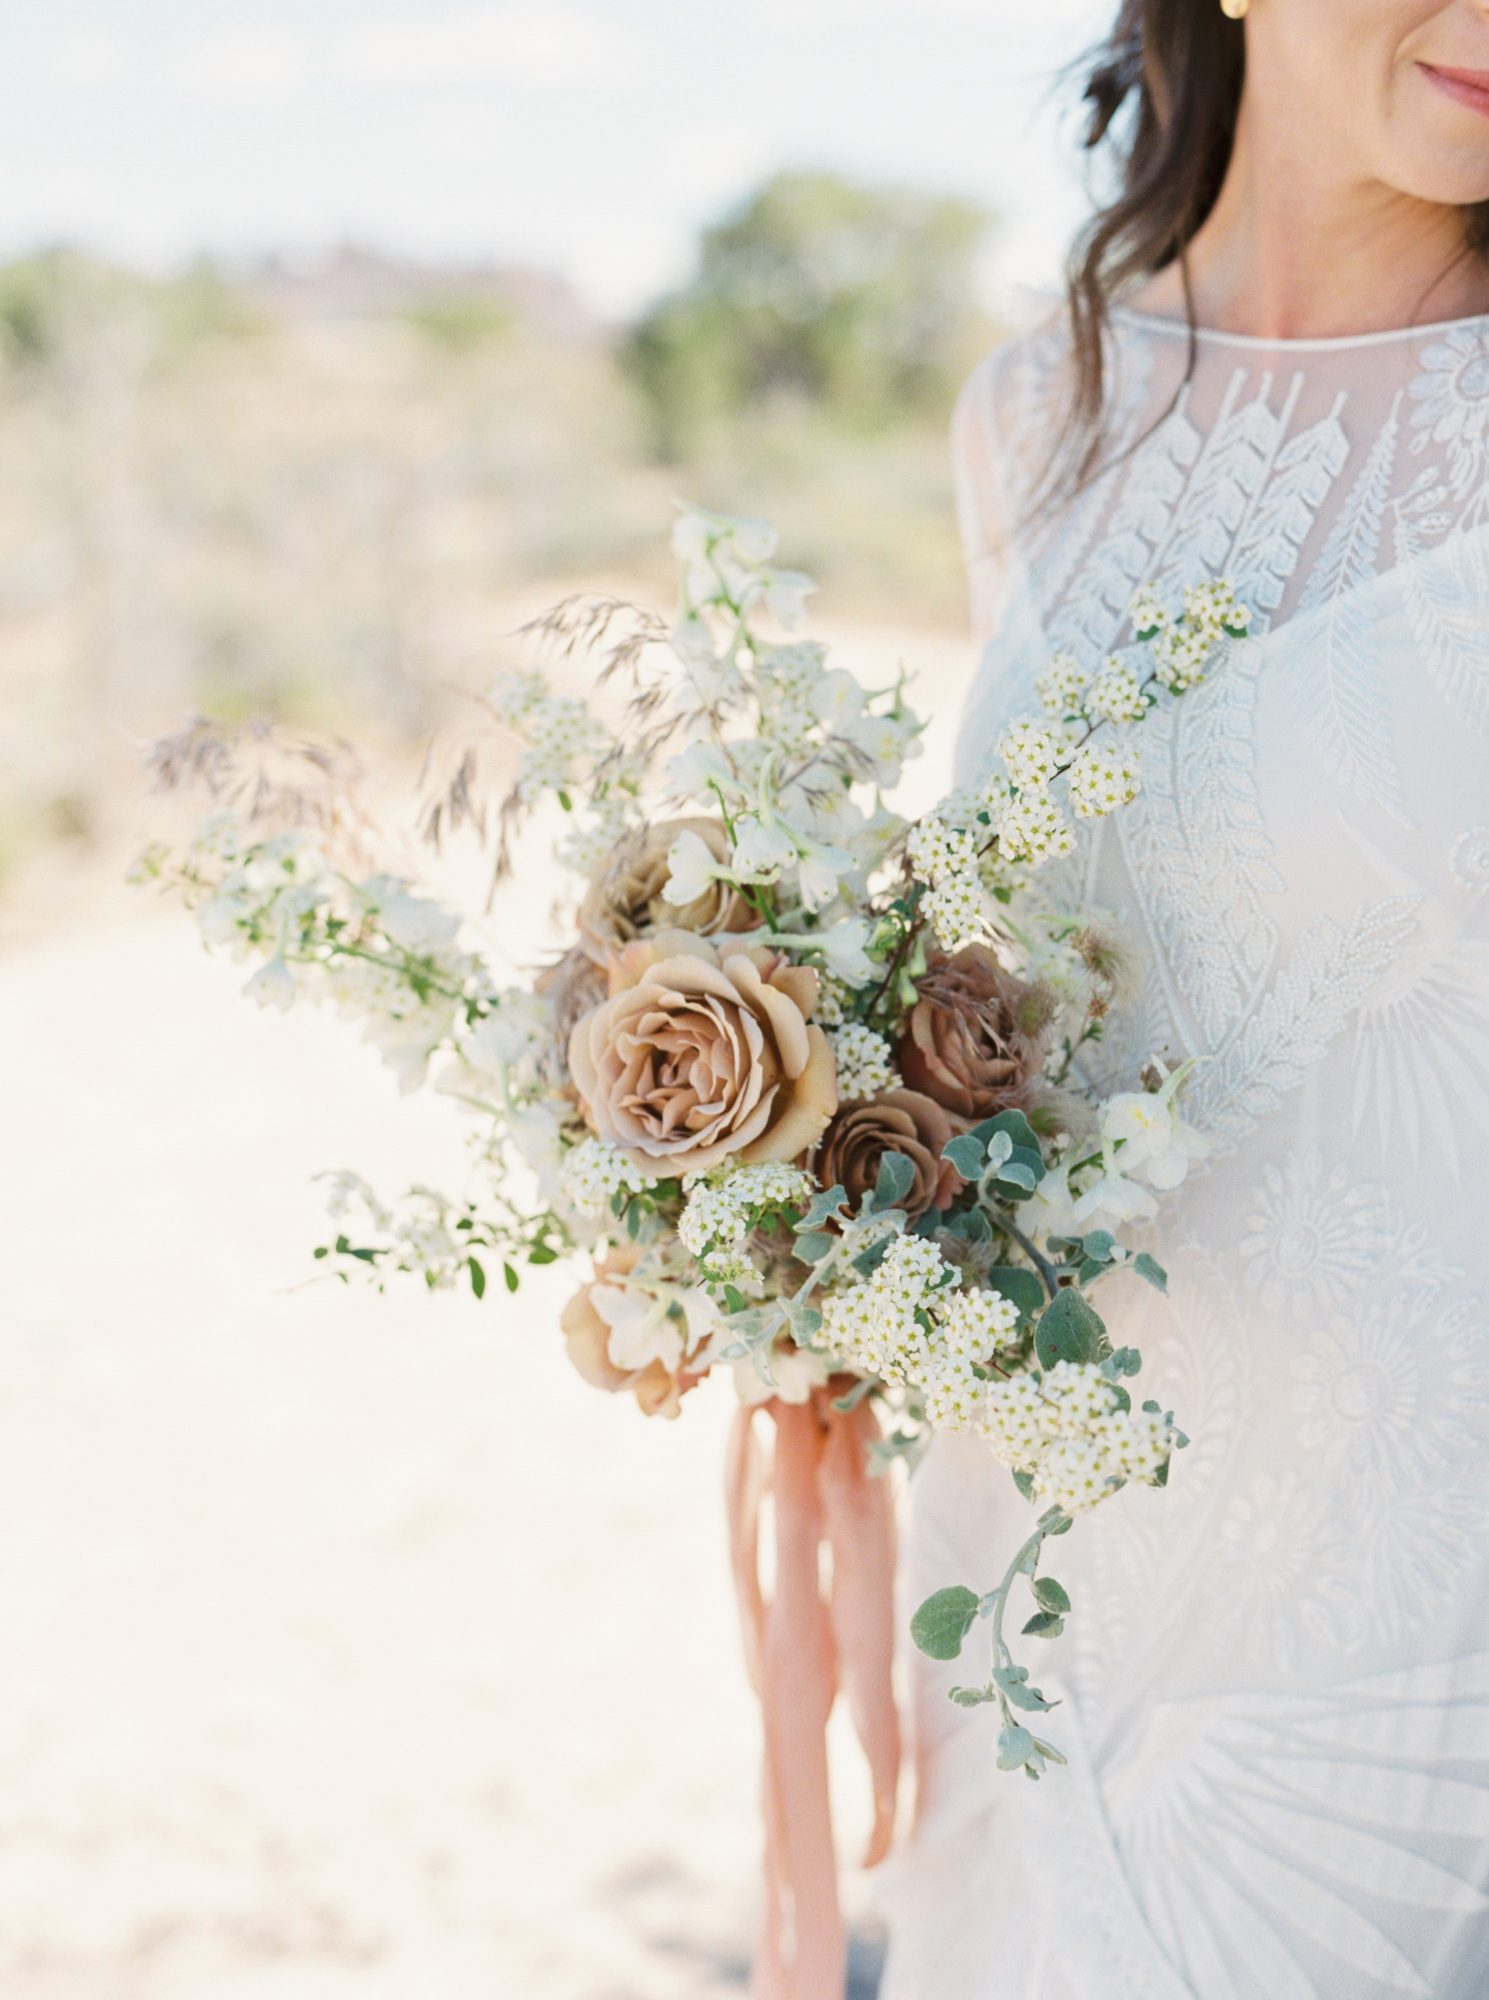 jeanette david wedding desert bouquet bride